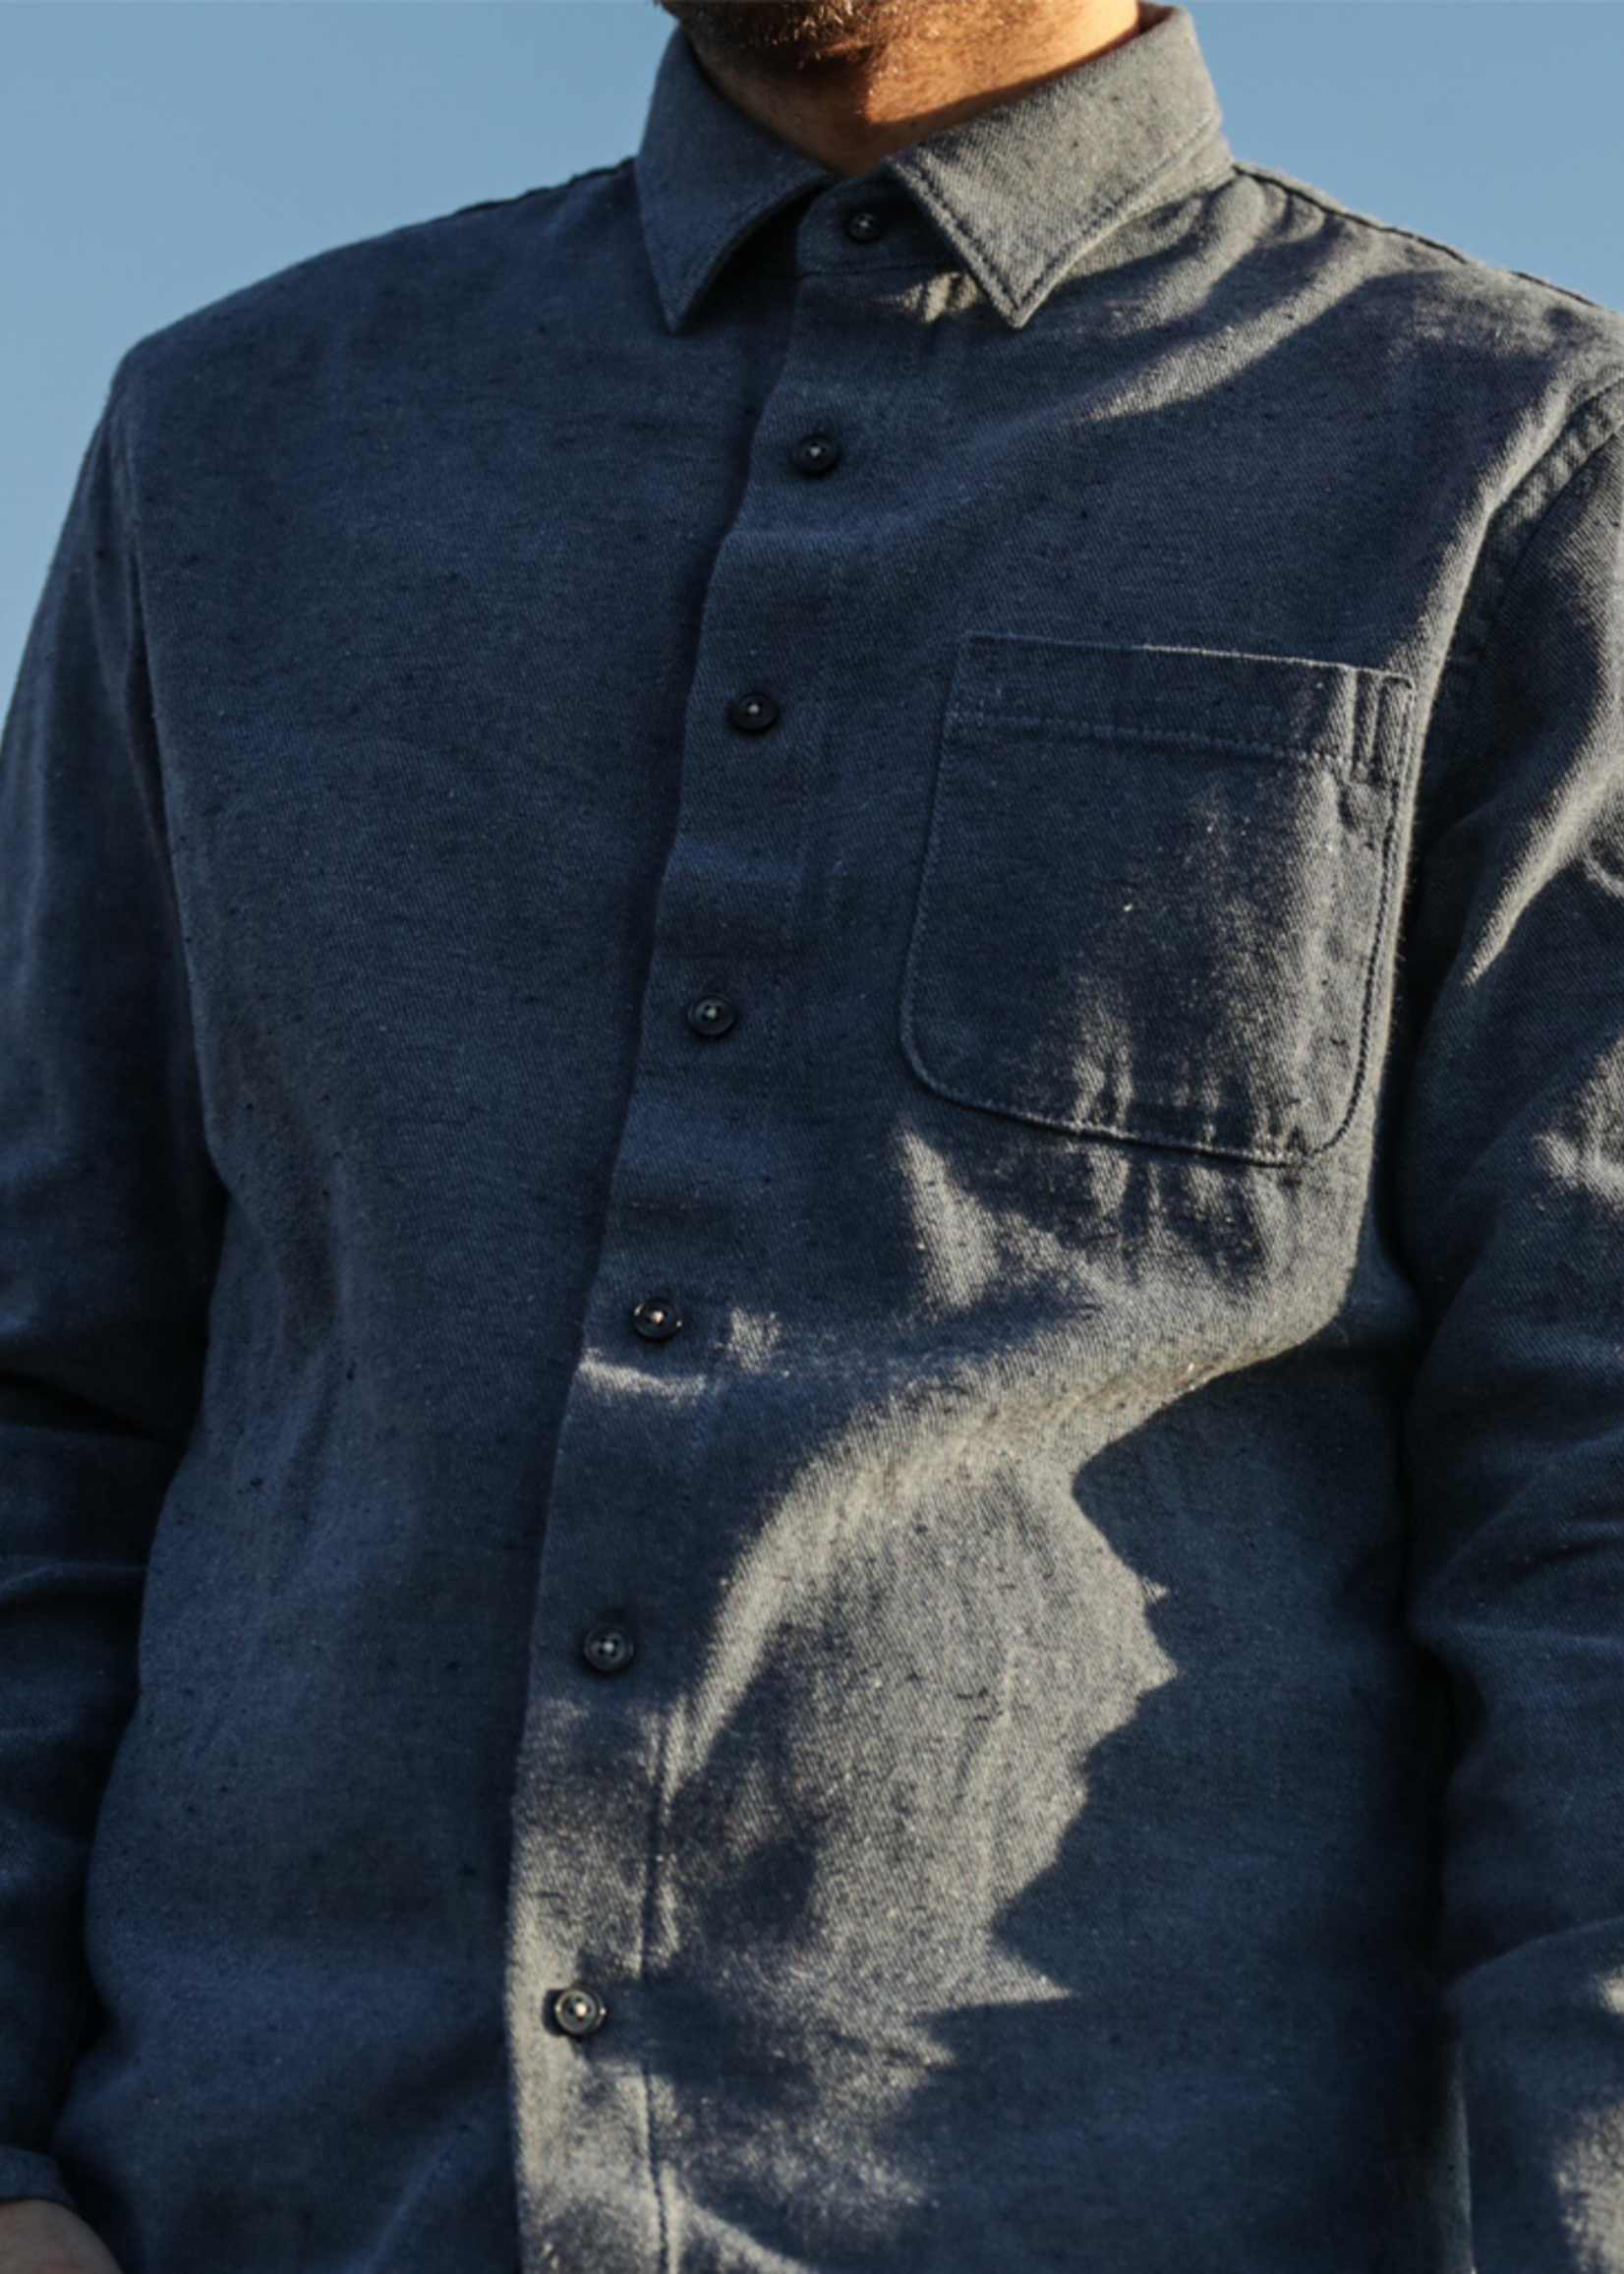 Kato Ripper Shirt Dark Blue Recycled Denim by Kato